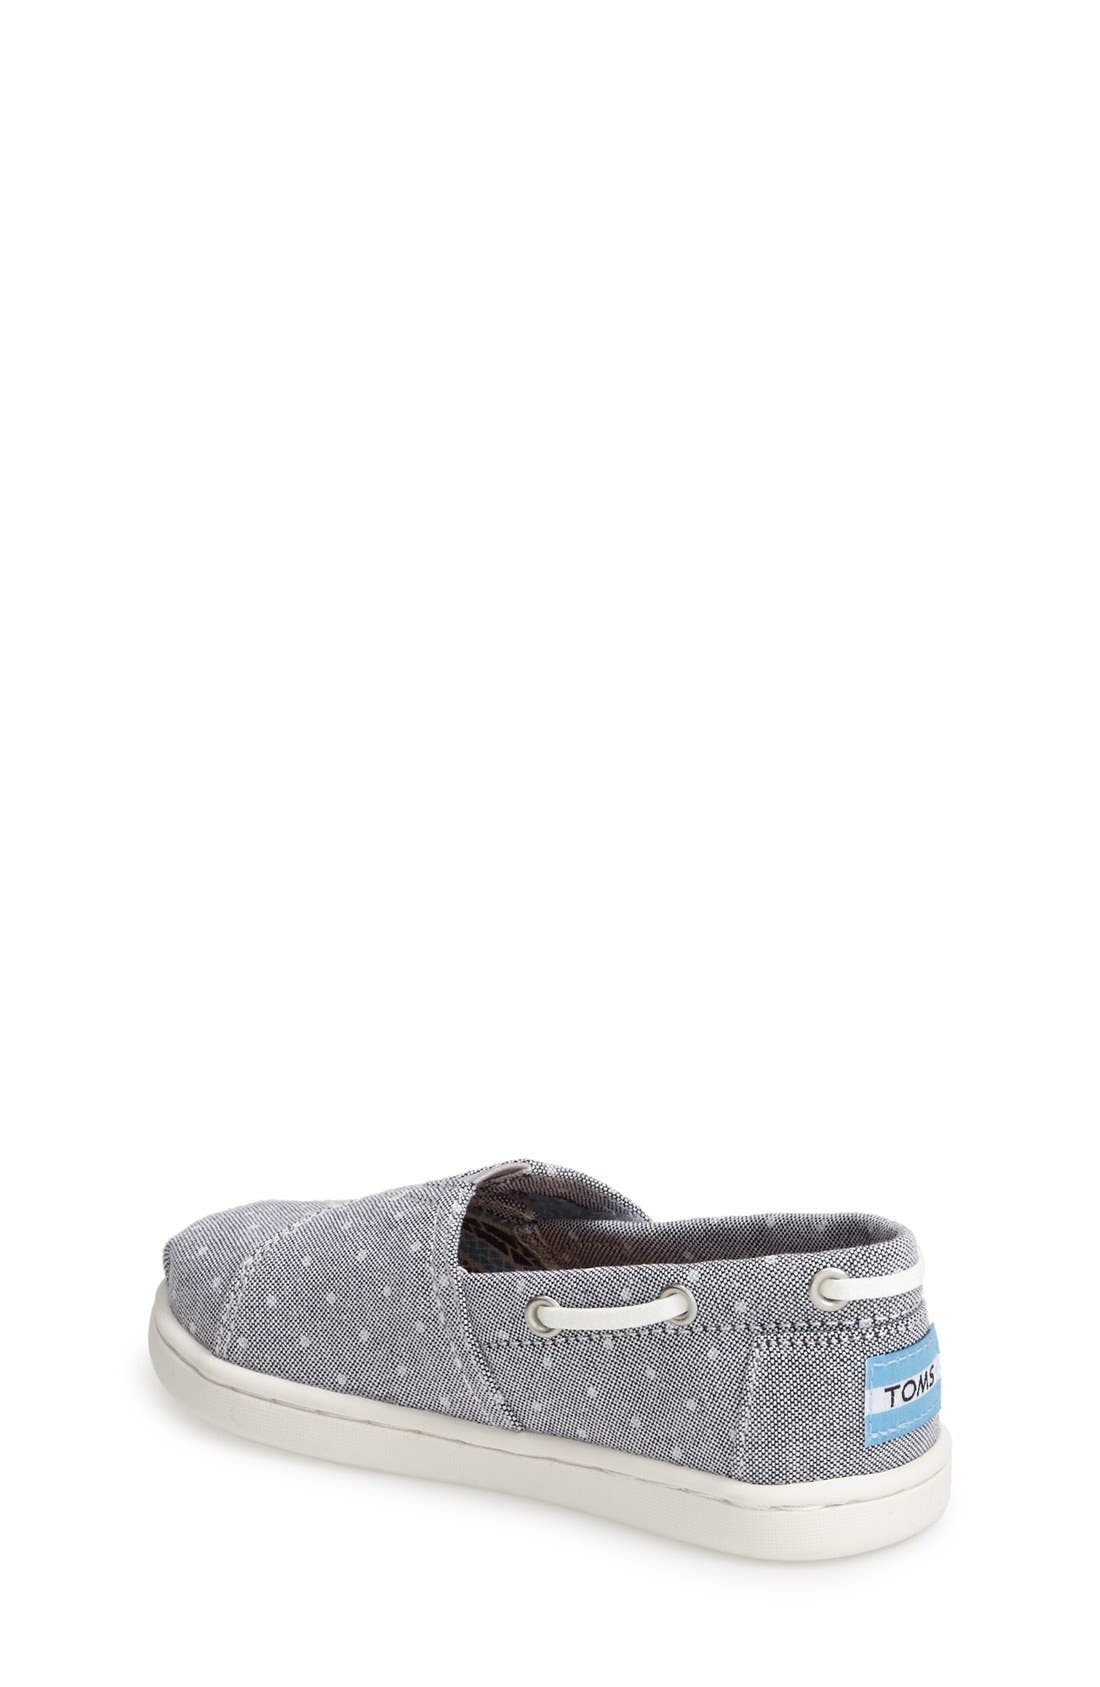 Alternate Image 3  - TOMS 'Bimini - Tiny' Slip-On (Walker & Toddler)